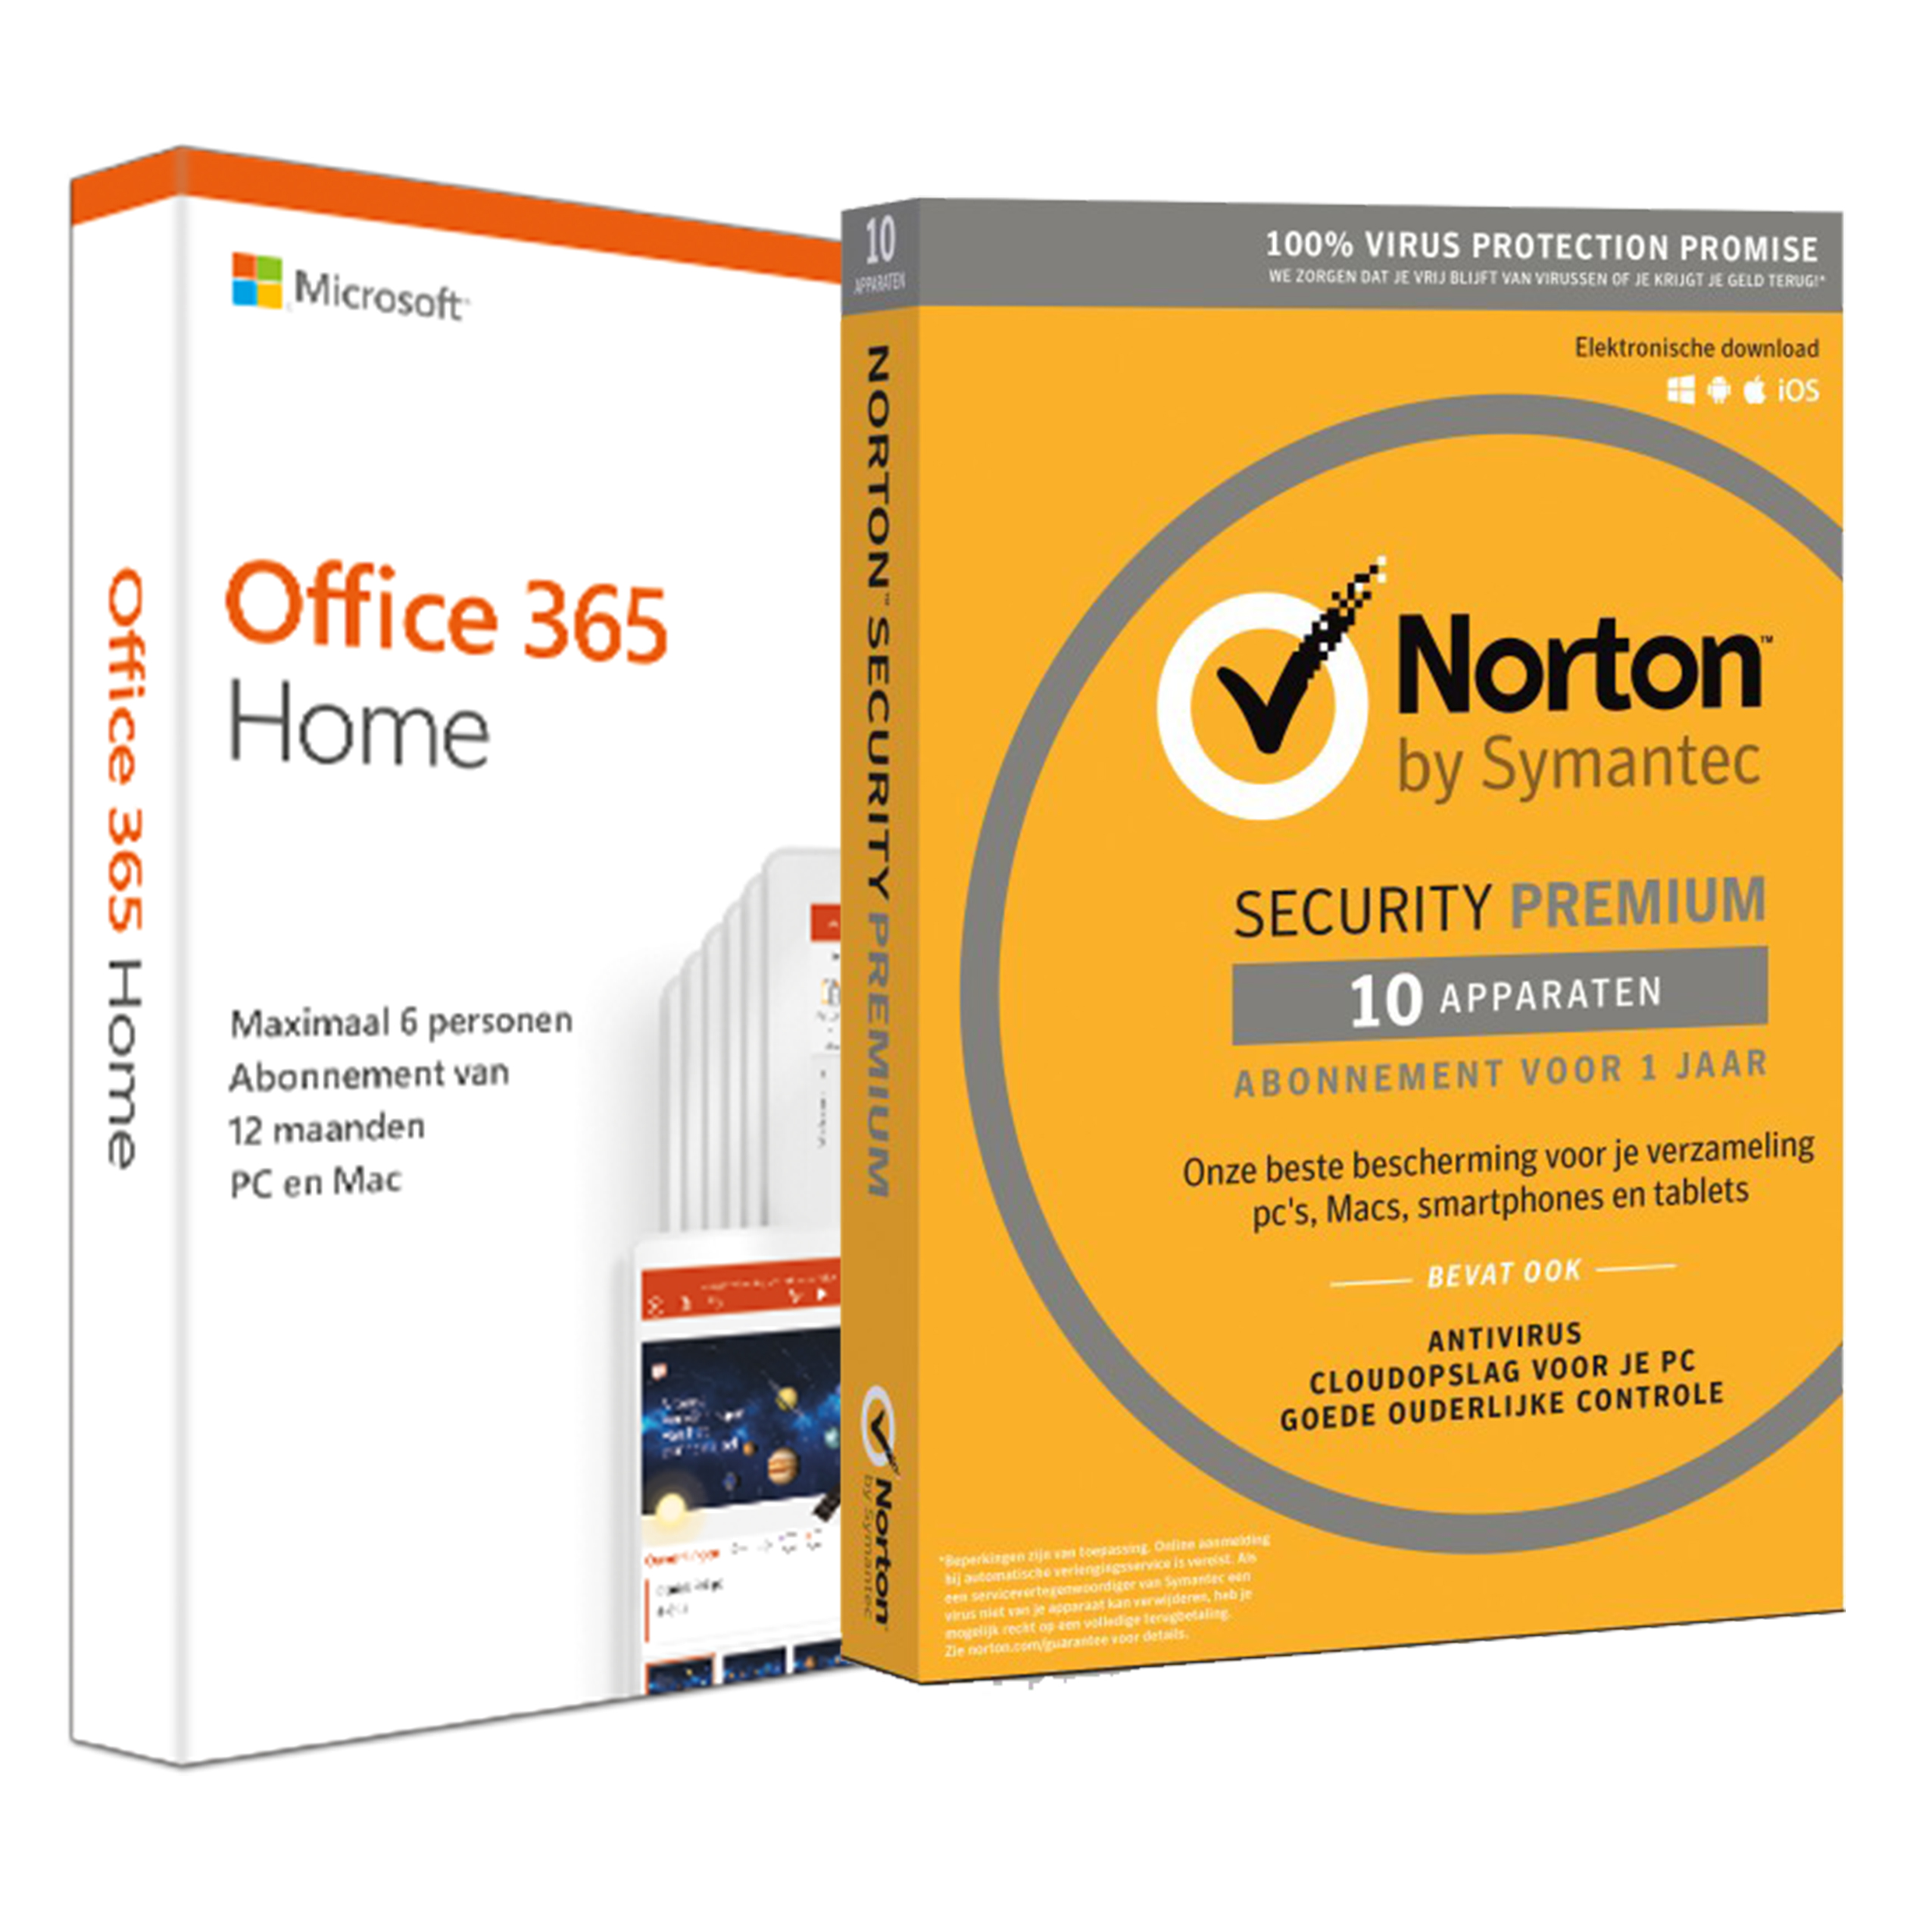 Office 2016 Kopen Voordeelbundel Office 365 Home 6 Apparaten Norton Premium 10 Apparaten